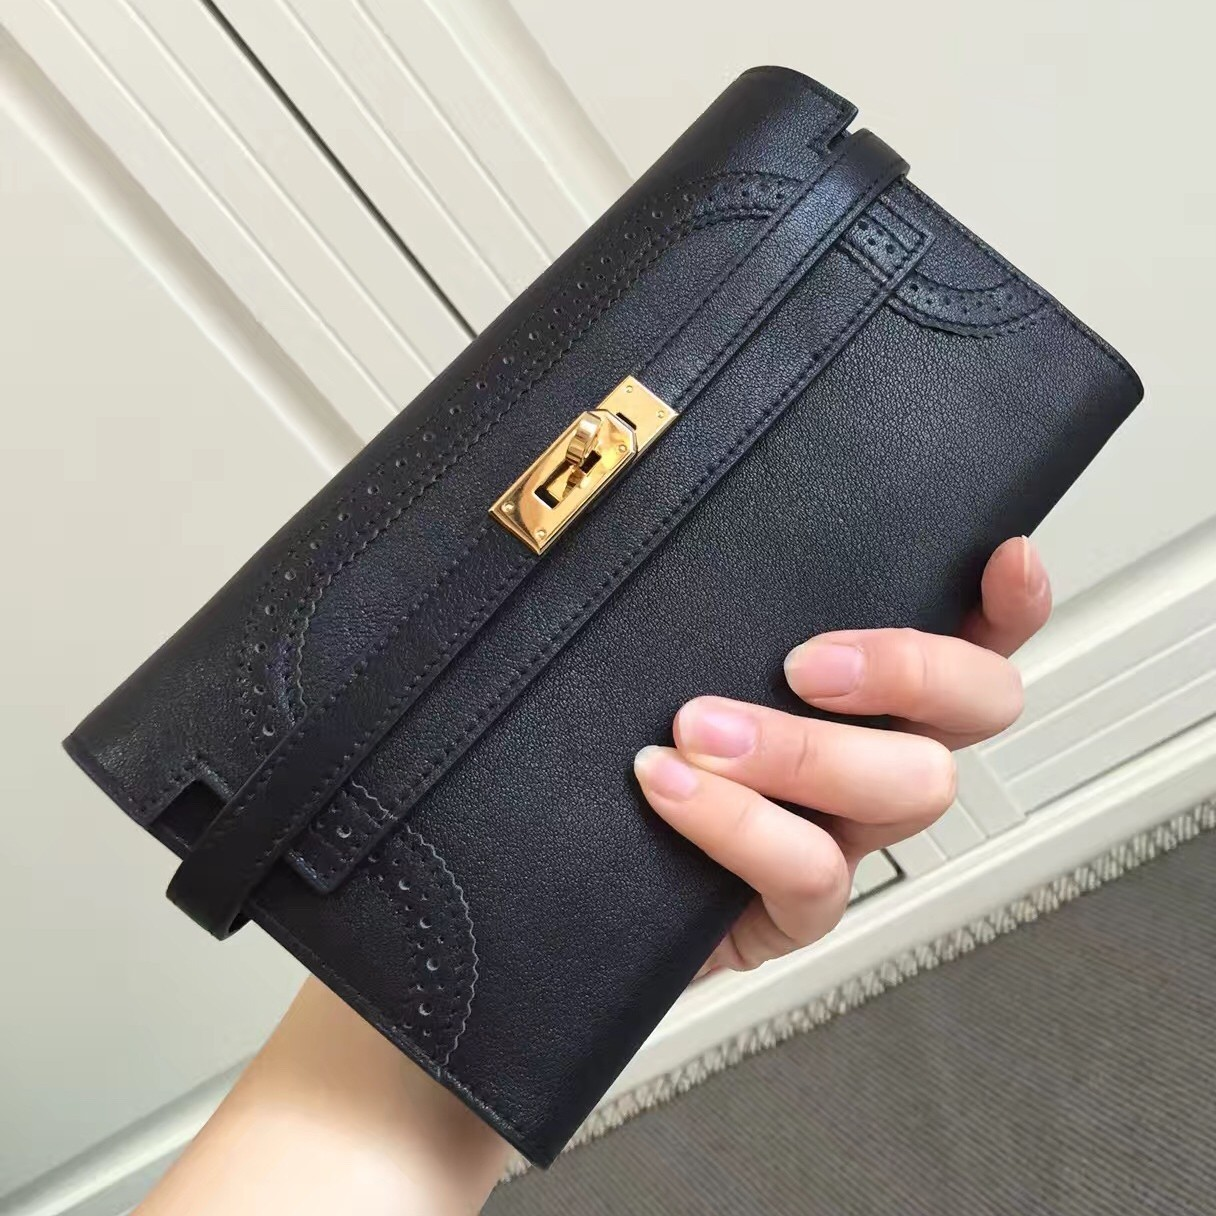 Discount Hermes Kelly Ghillies Wallet In Black Swift Leather